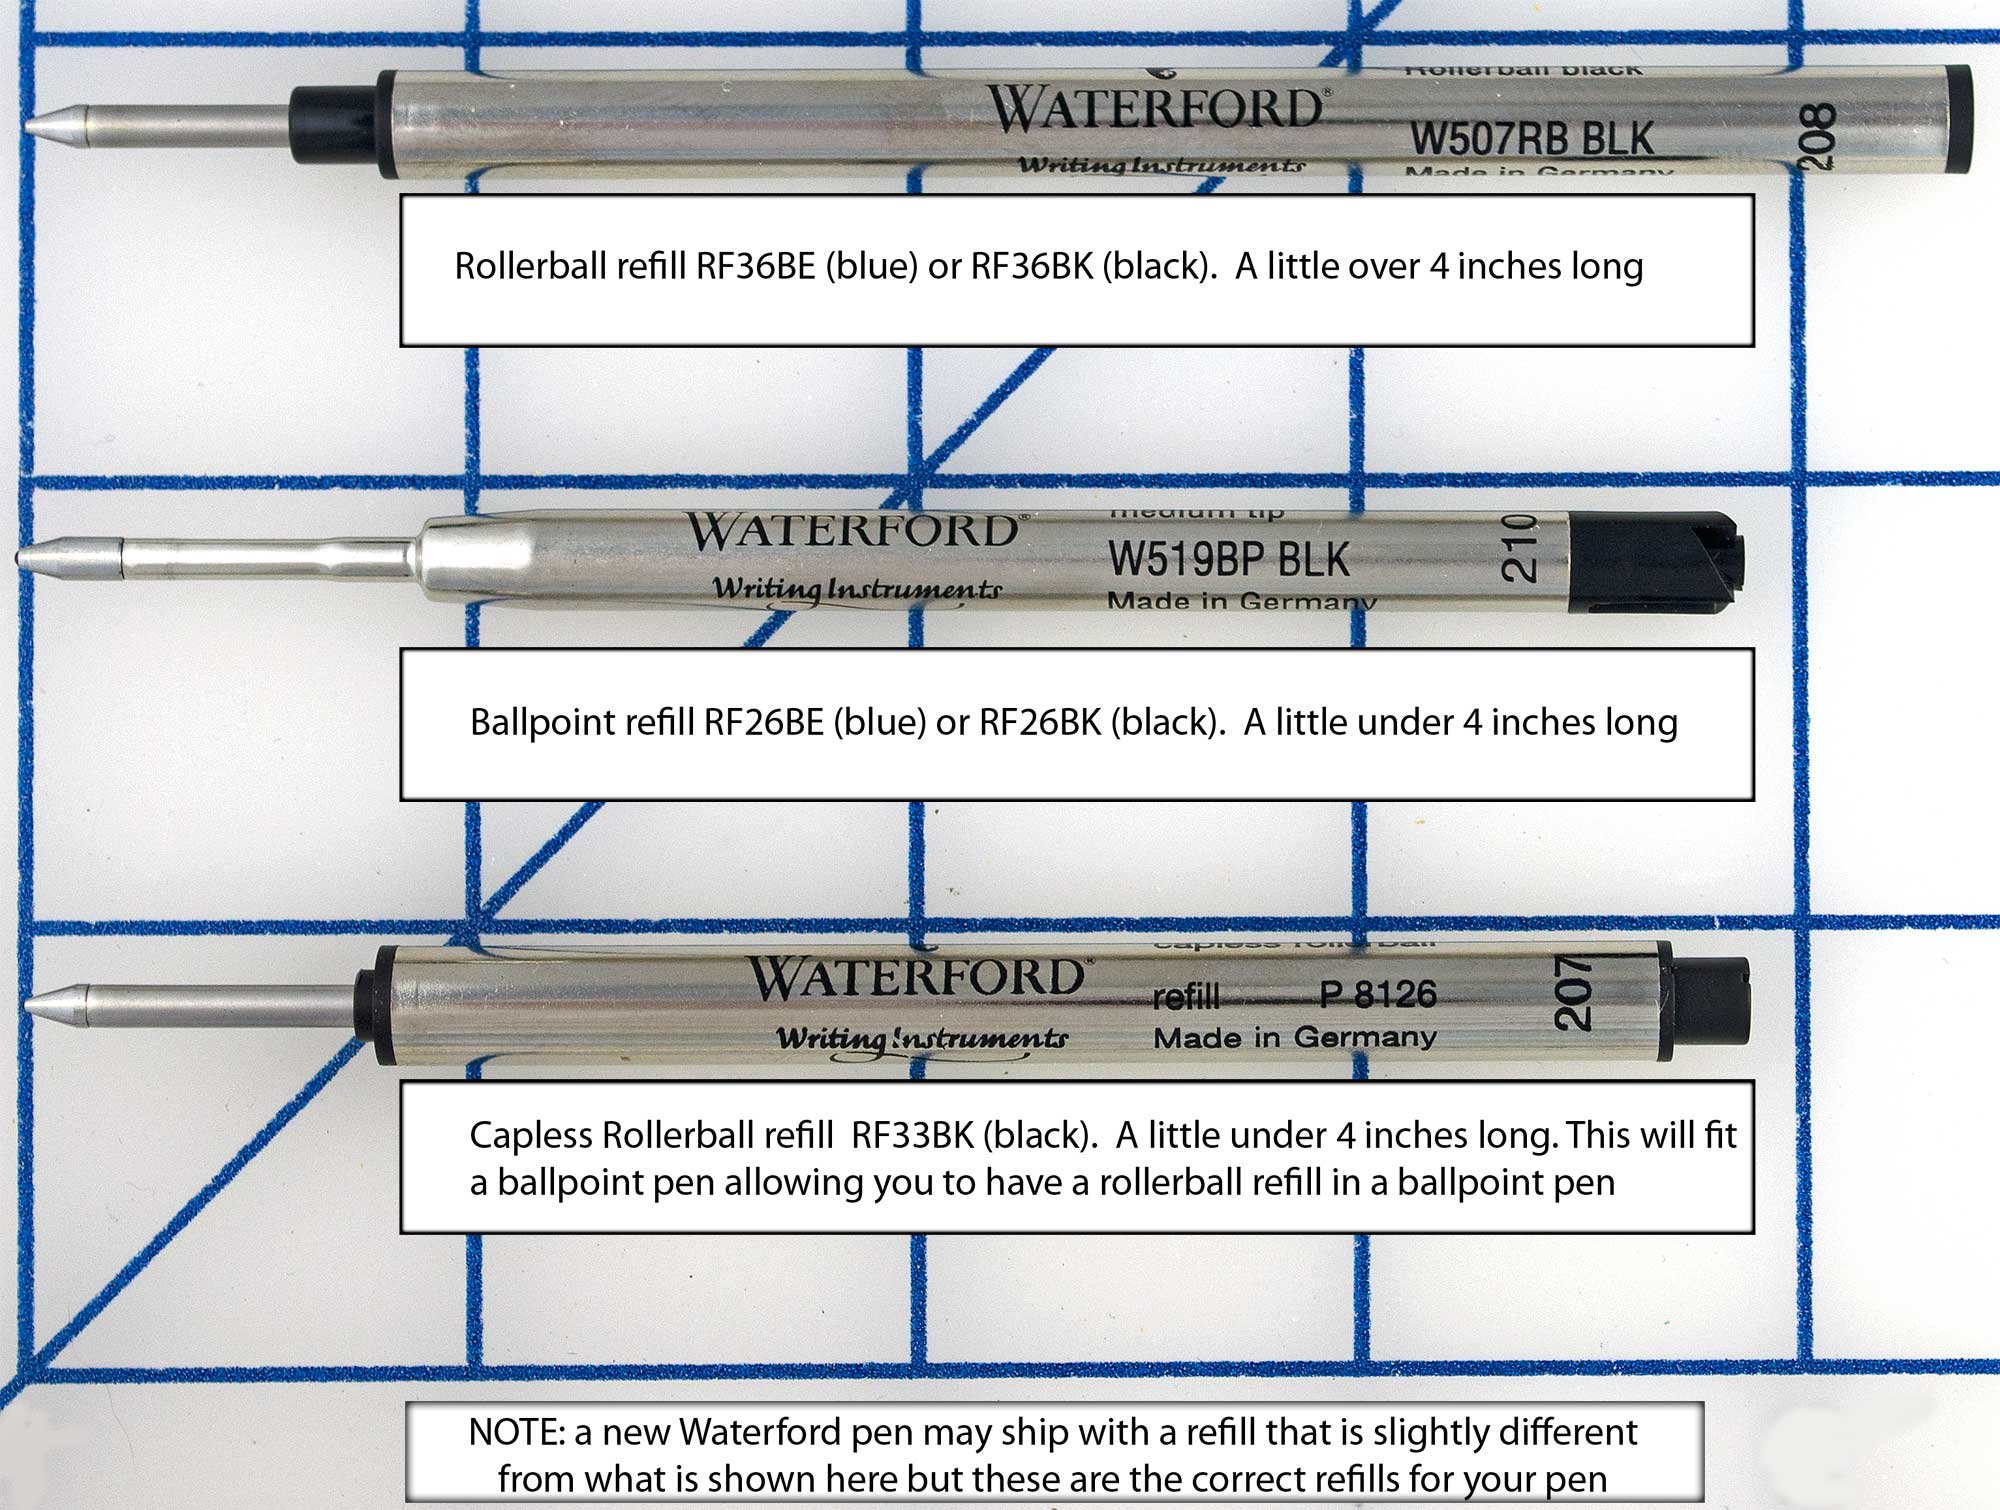 Waterford Capless Rollerball Pen Refill Black Six Pack by WATERFORD (Image #1)